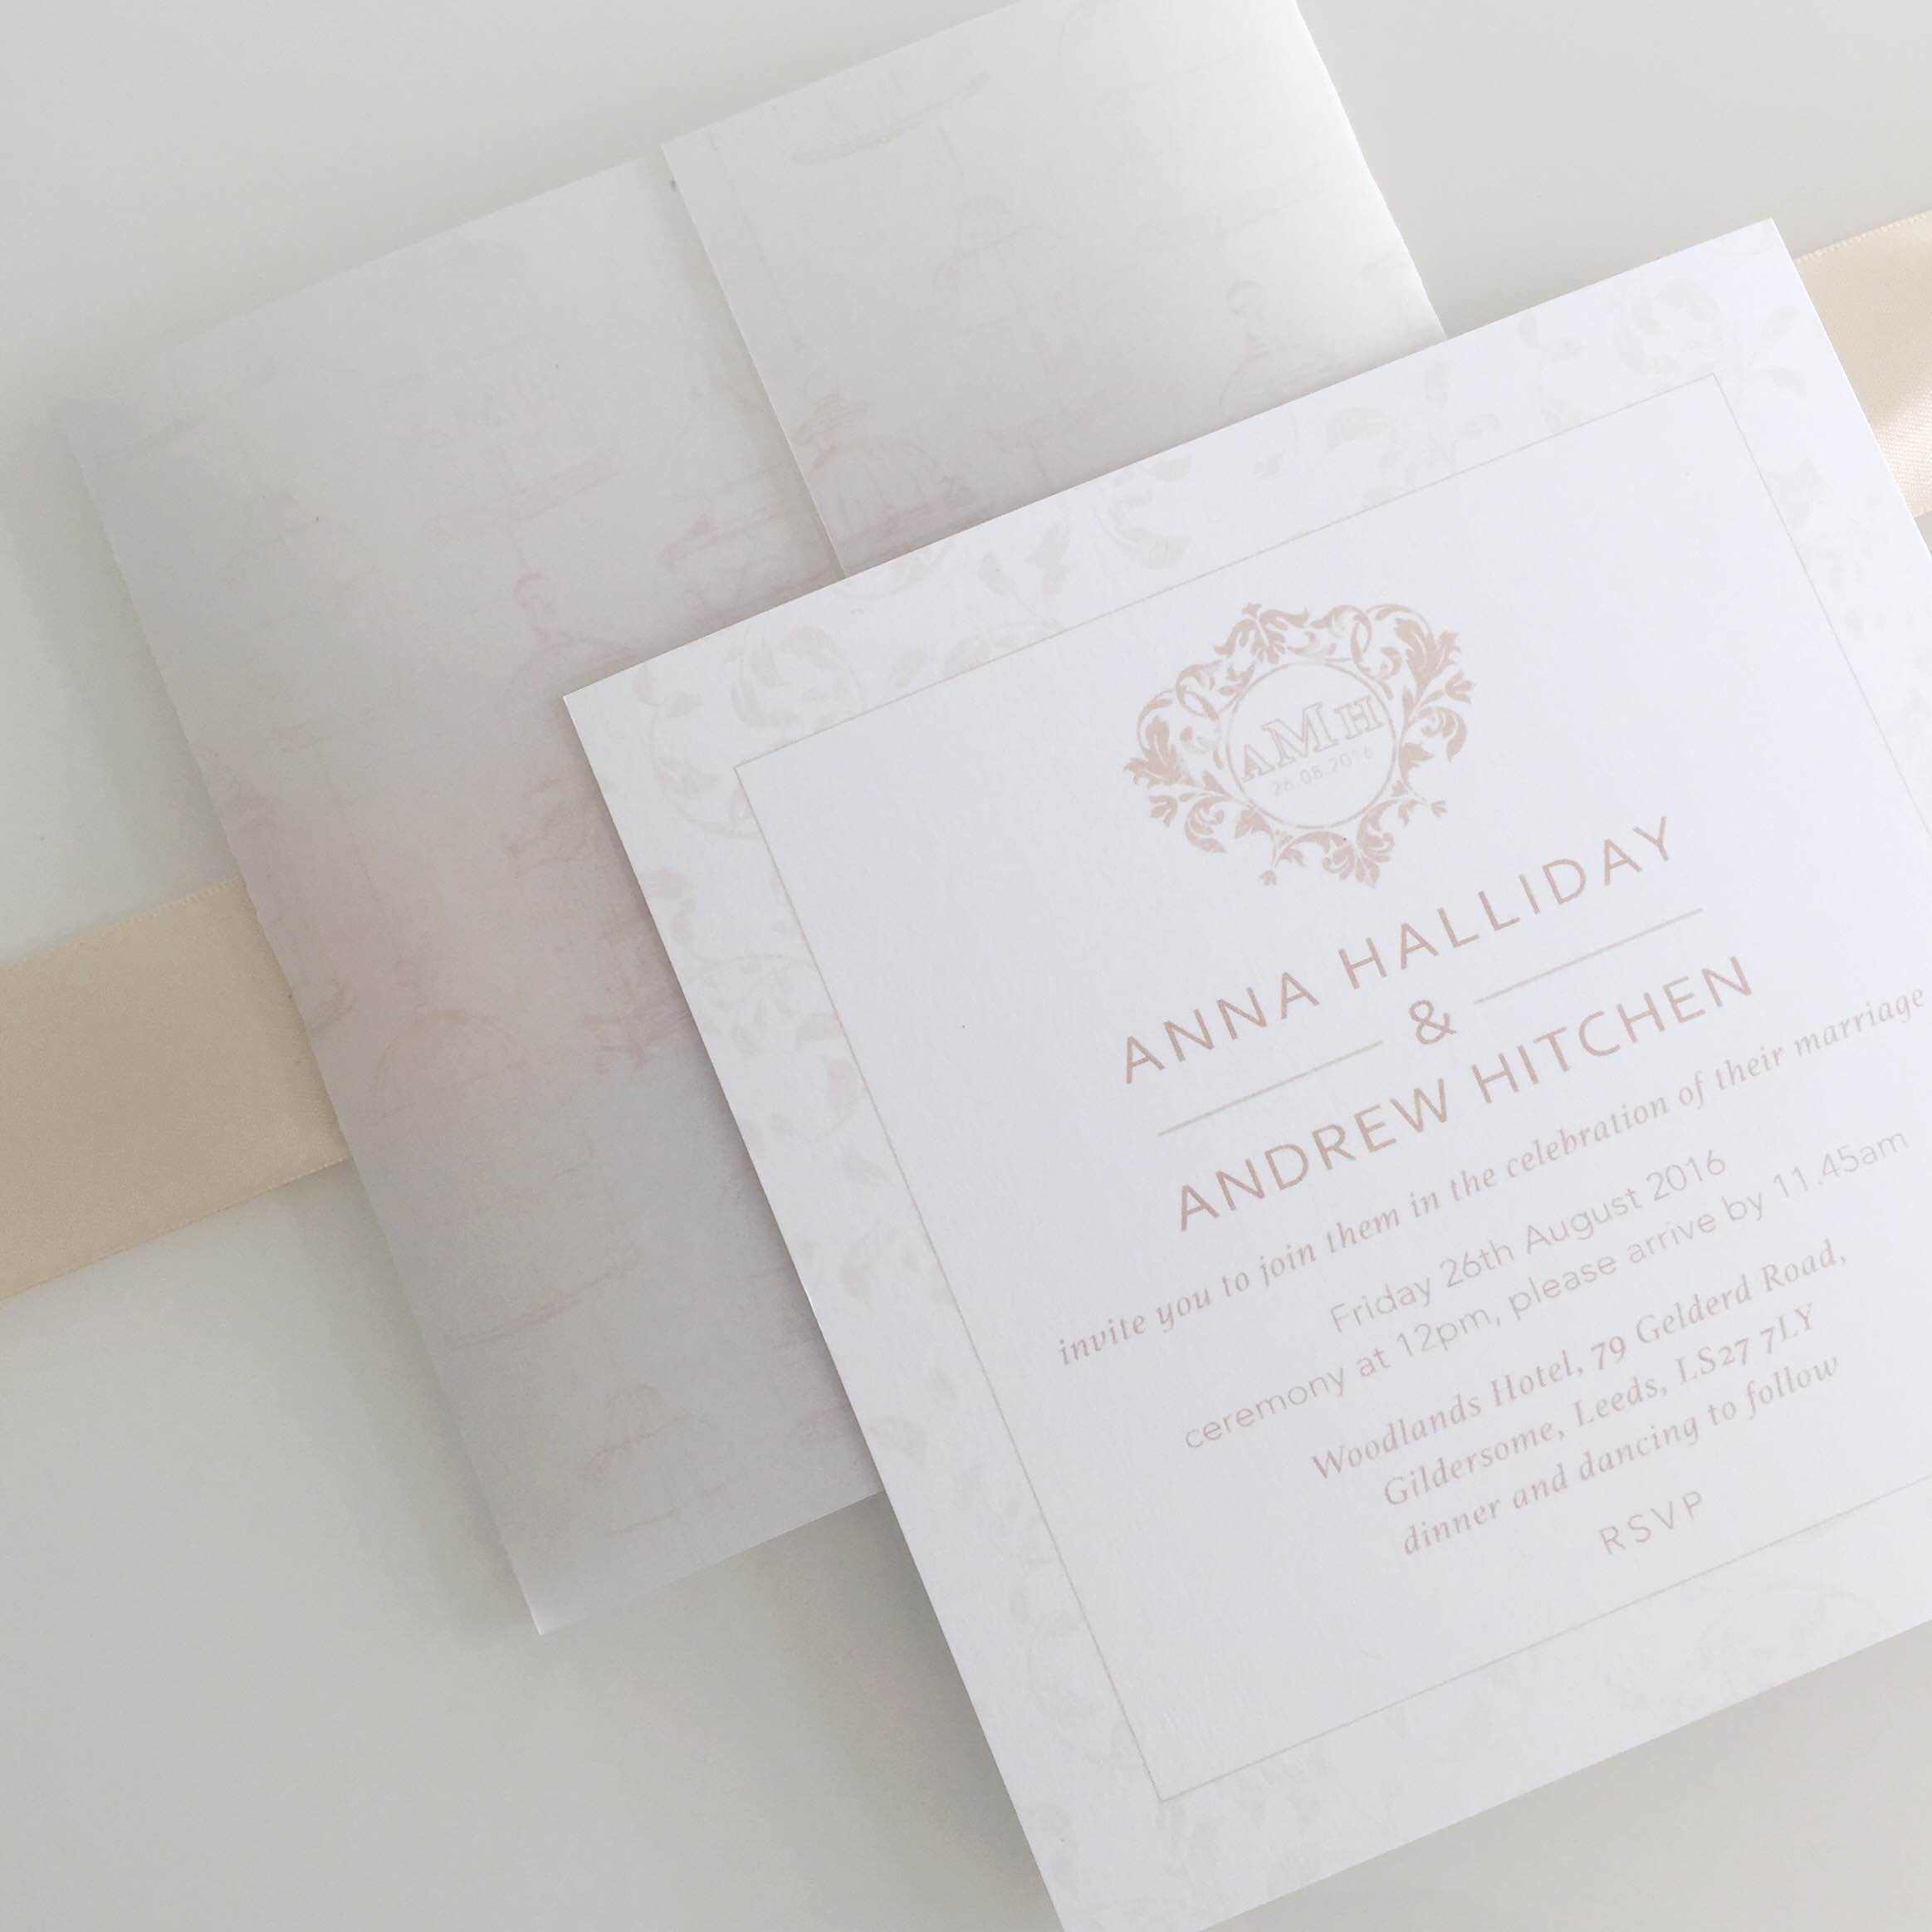 birdcage wedding invitation template%0A b e s p o k e    wedding stationery invitation design    this vintage  inspired design has a delicate birdcage print on G